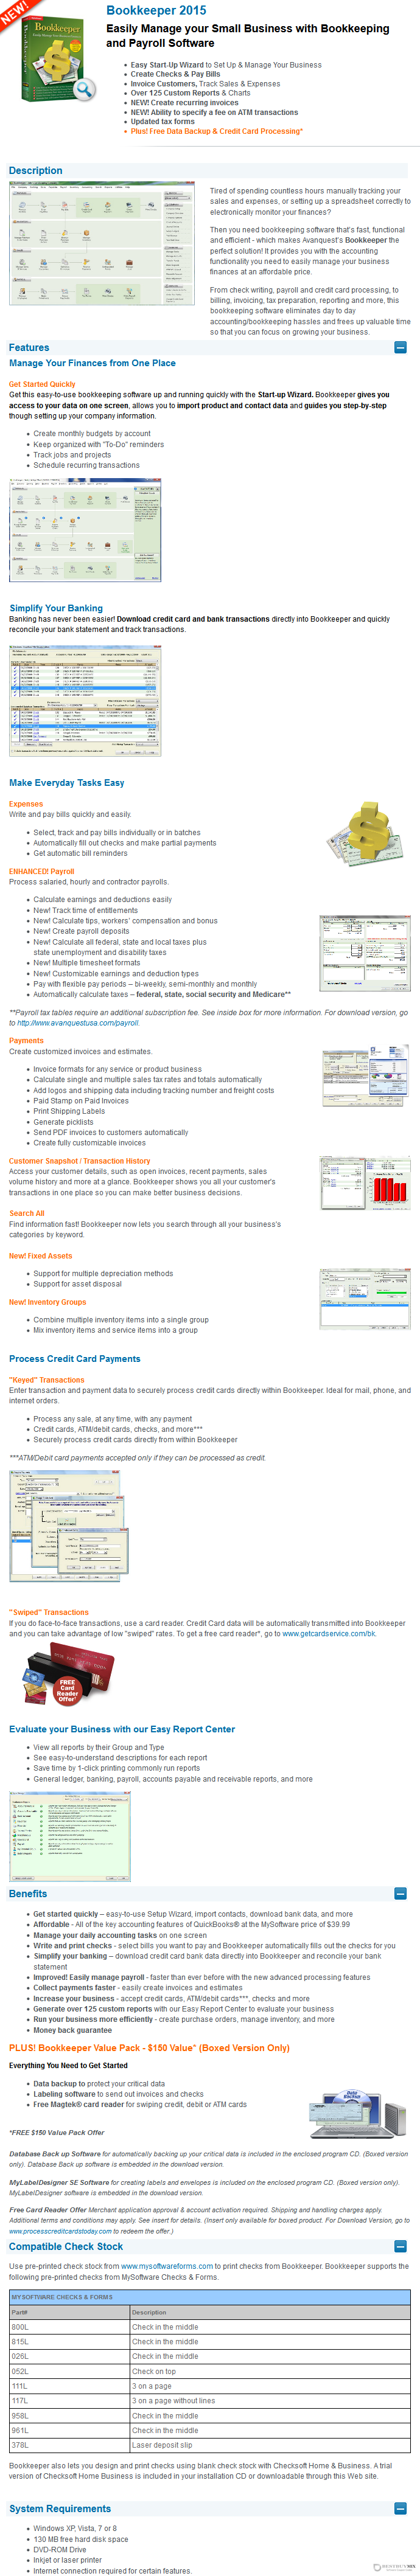 30% Off - Avanquest Bookkeeper with Discount Coupon code